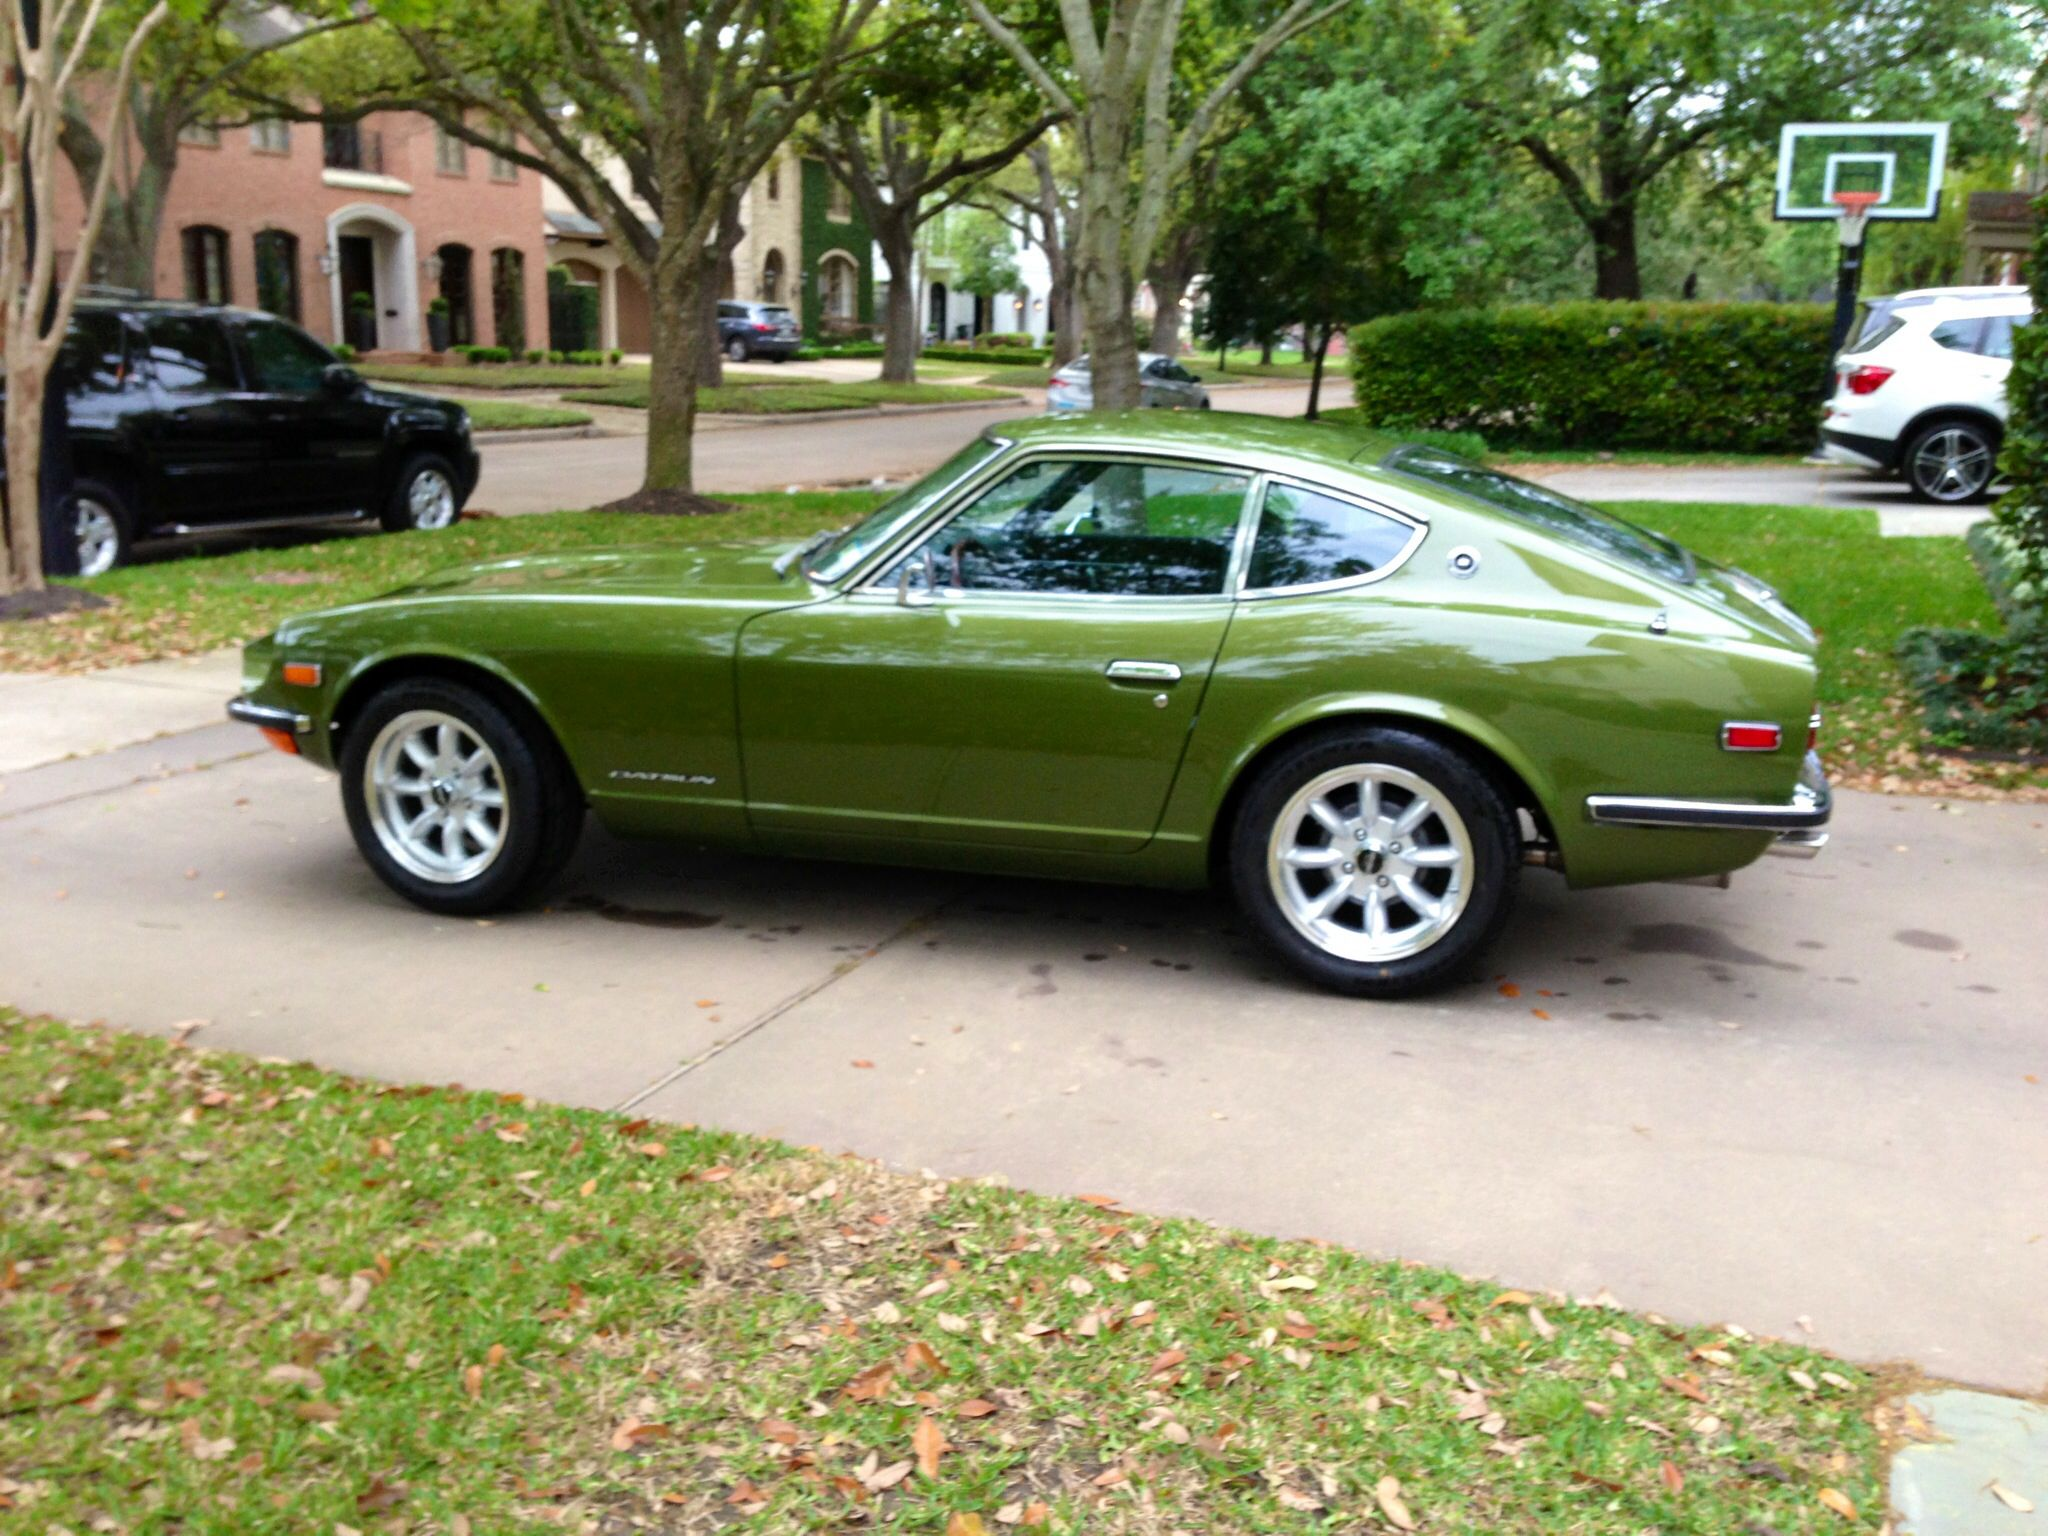 Datsun 280z it was thanks to the 240z that the british sports car industry collapsed nissan datsun z cars pinterest sports cars cars and nissan